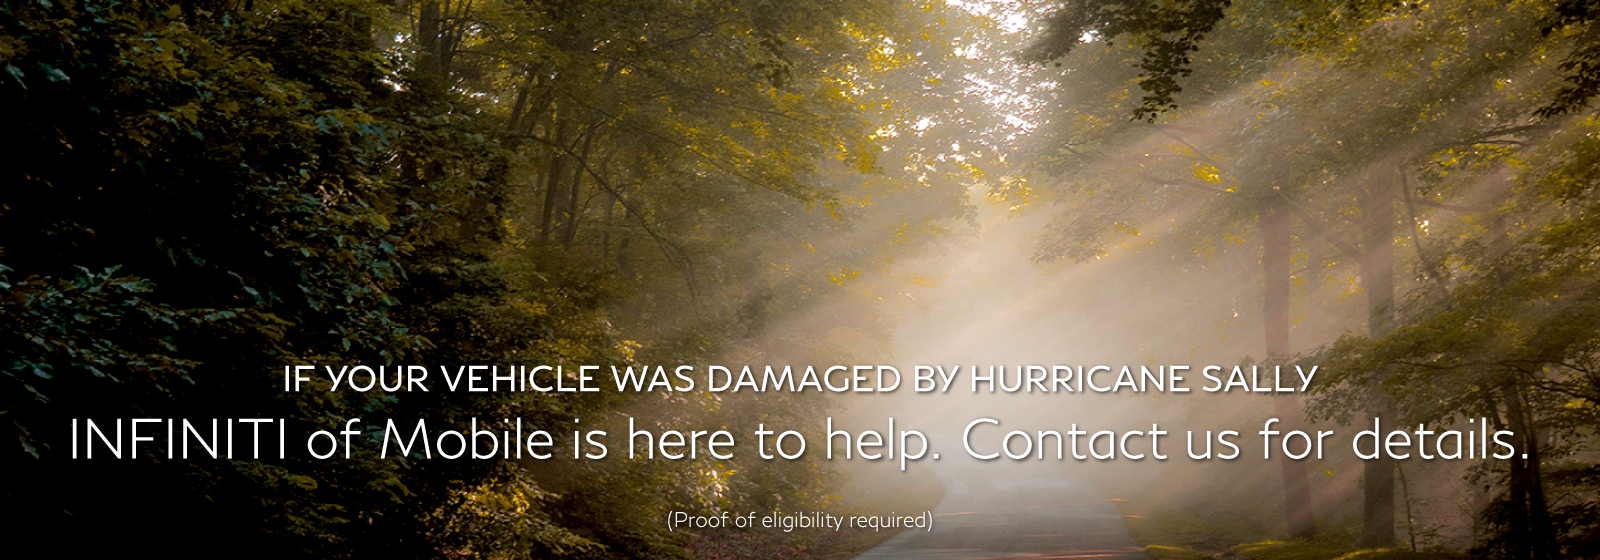 Contact Us if your vehicle was damaged in Hurricane Sally.